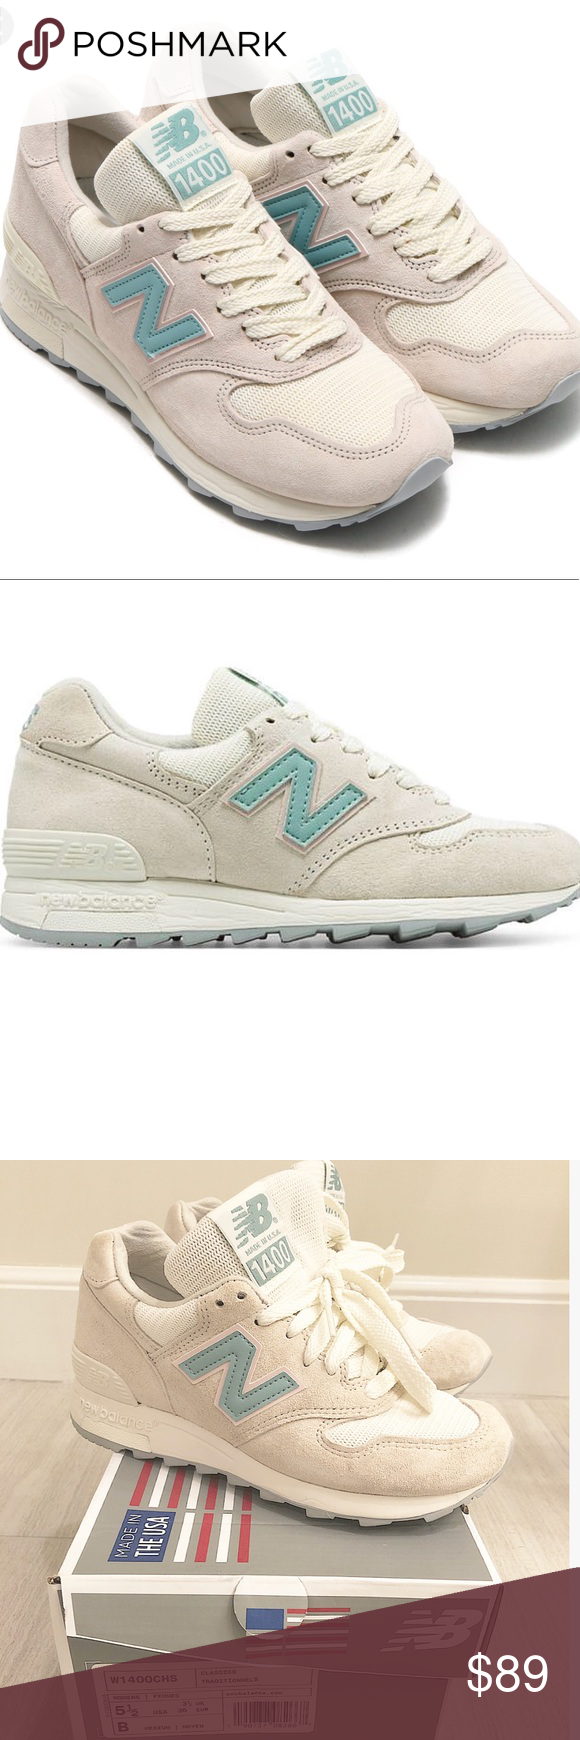 b77bf590133a NEW BALANCE WOMEN W1400CHS - GRAY   CREAM   BLUE) ONLY worn once and a